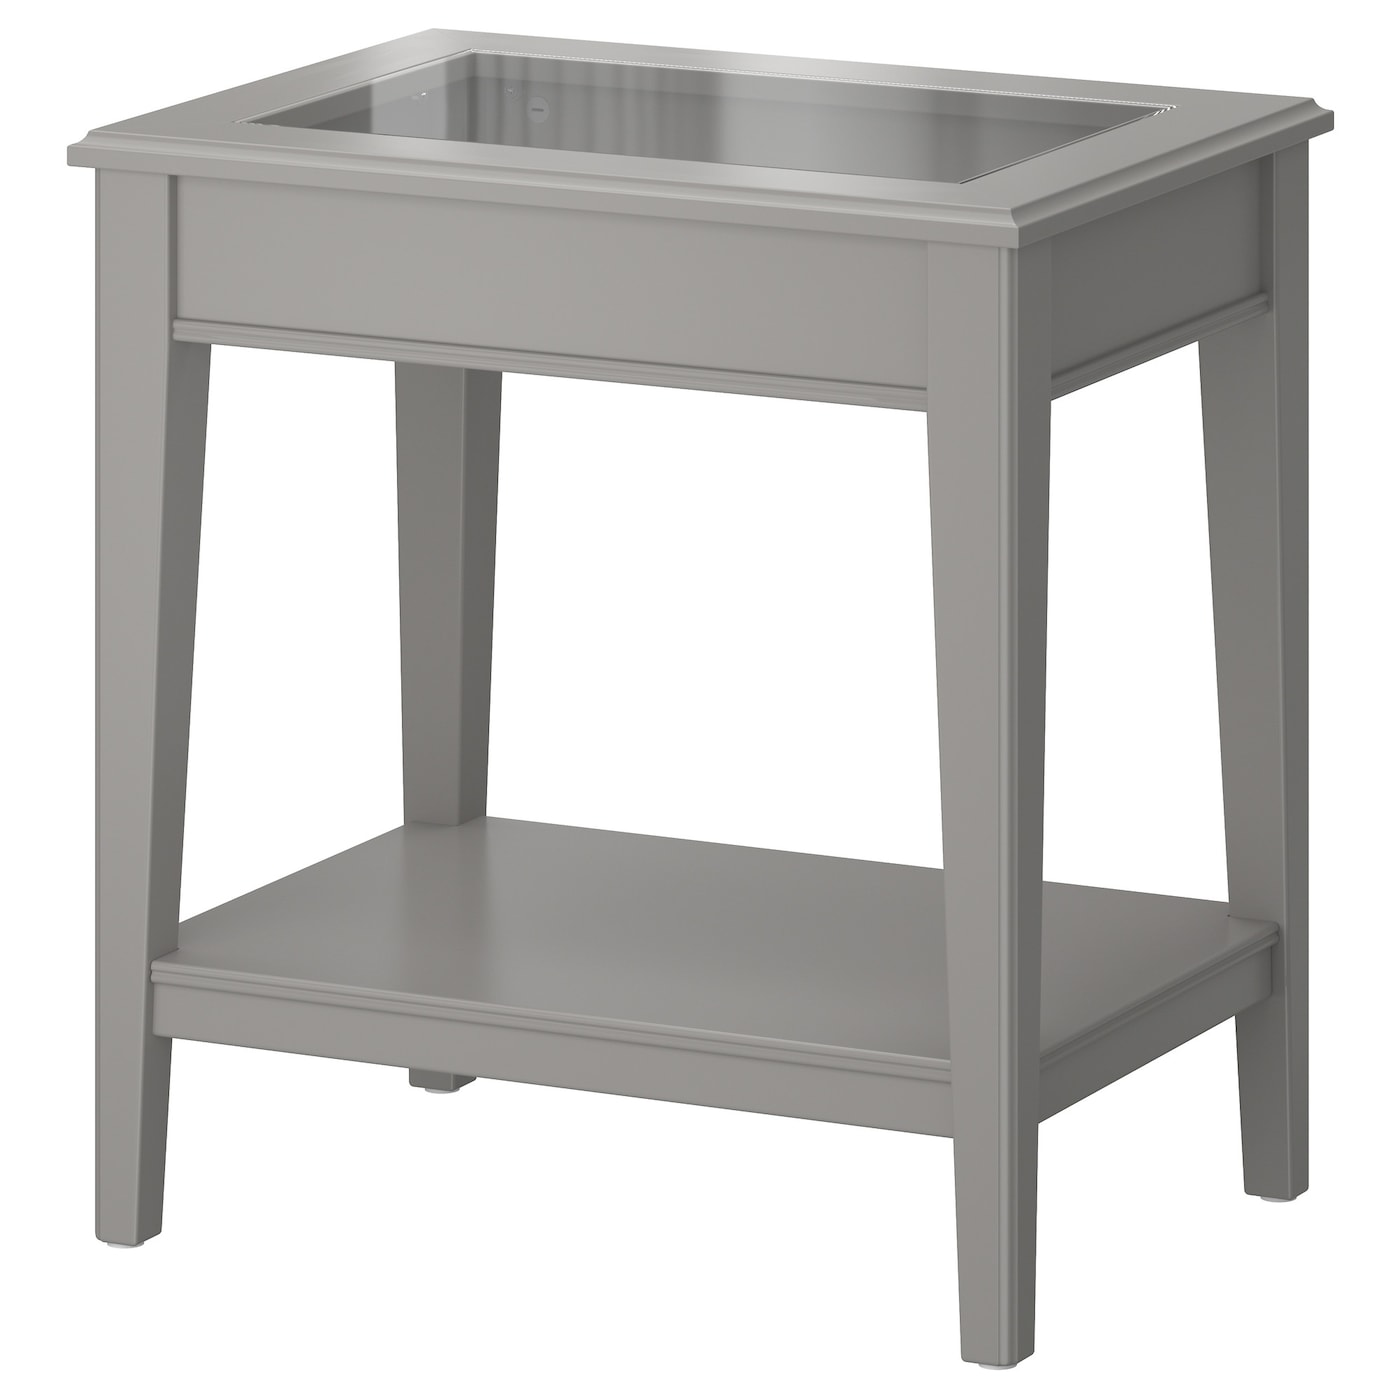 Liatorp side table grey glass 57x40 cm ikea Ikea coffee tables and end tables